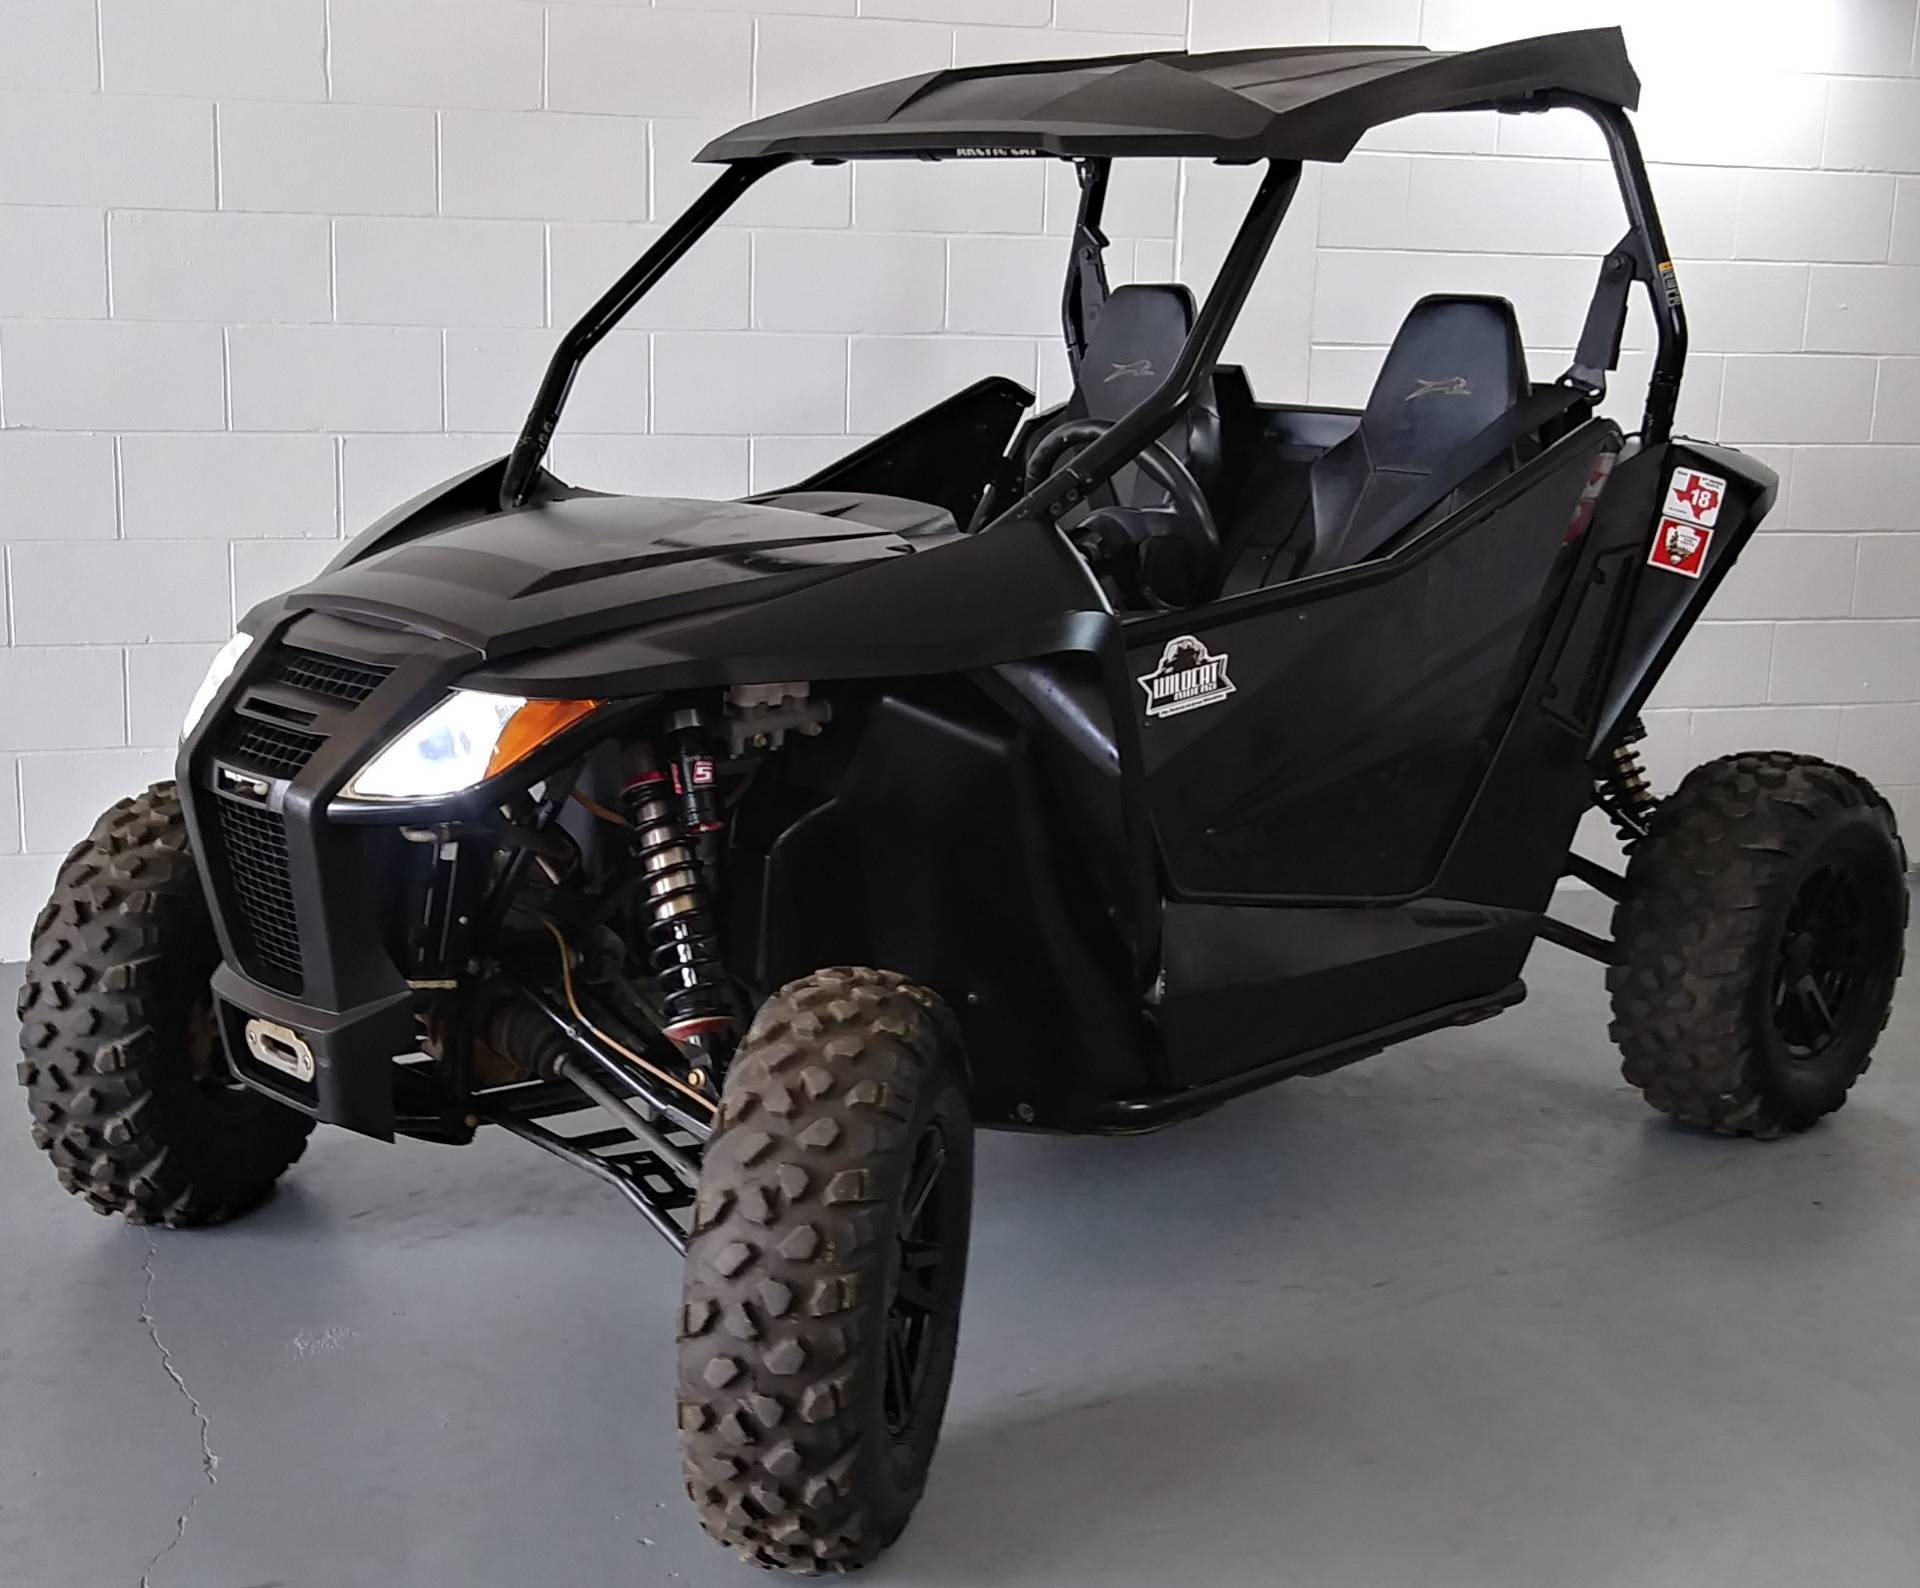 2015 Arctic Cat Wildcat™ Sport Limited EPS in Stillwater, Oklahoma - Photo 2